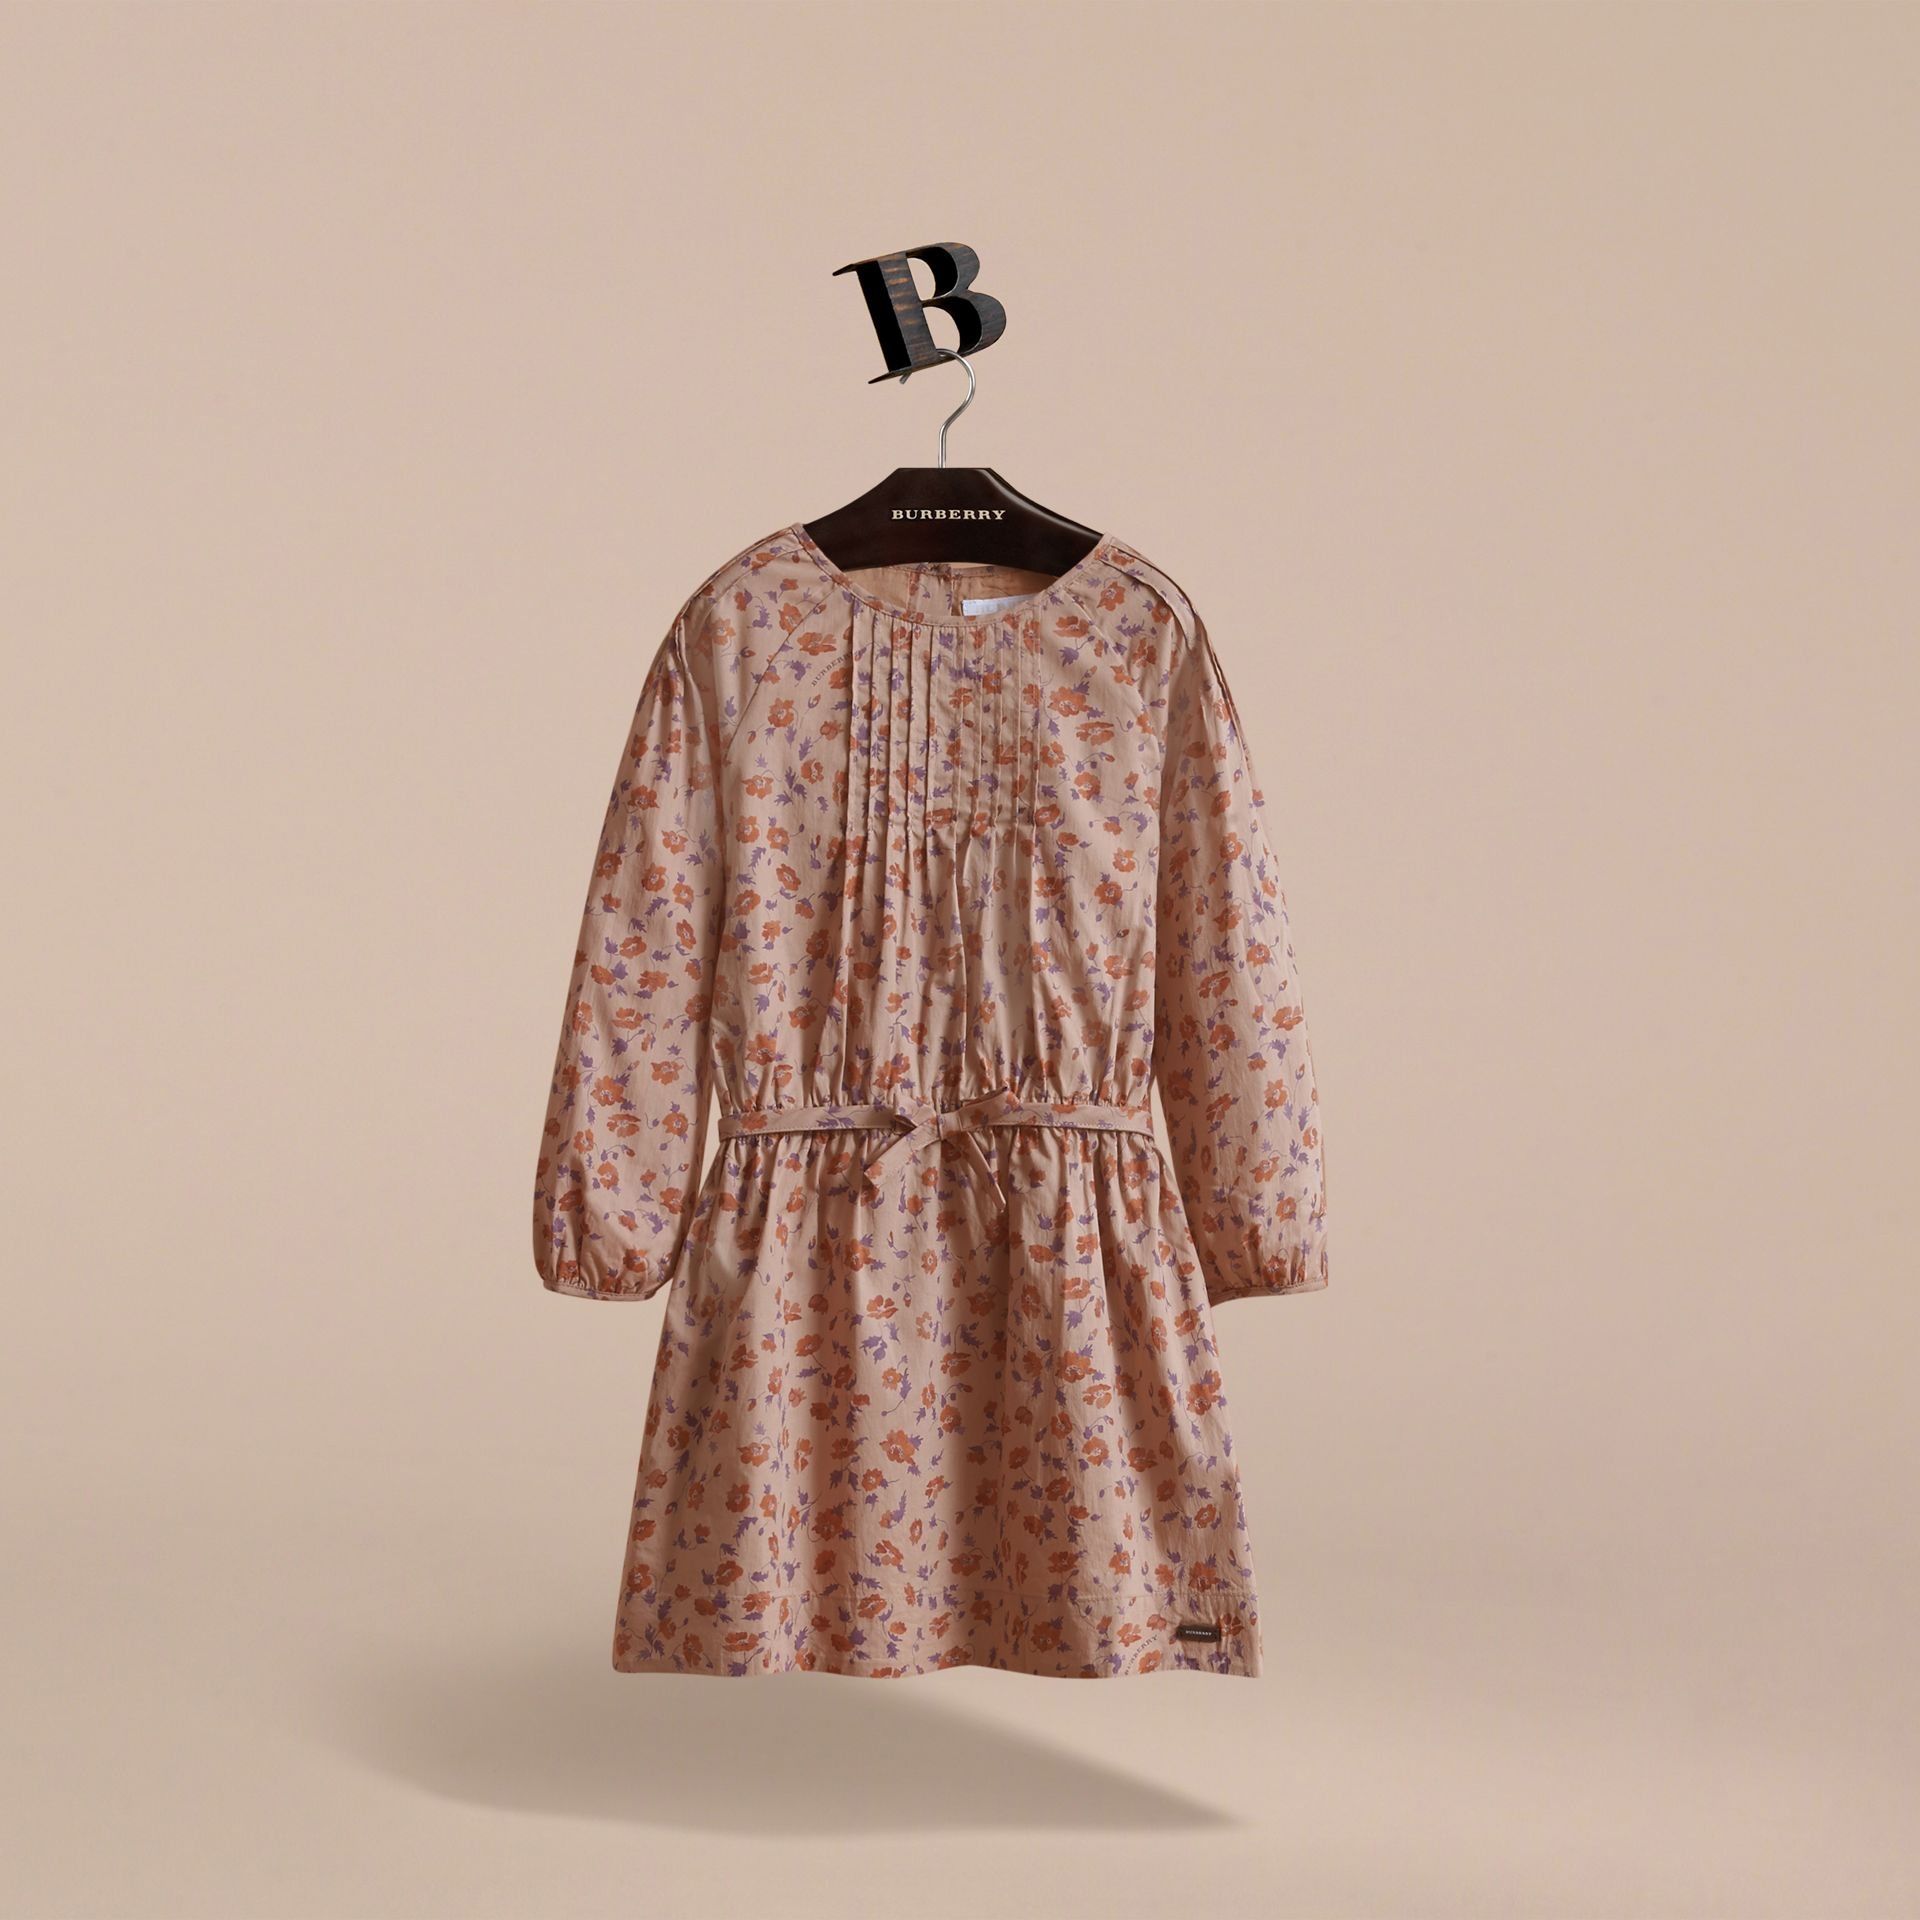 Pintuck Detail Floral Cotton Dress | Burberry - gallery image 3